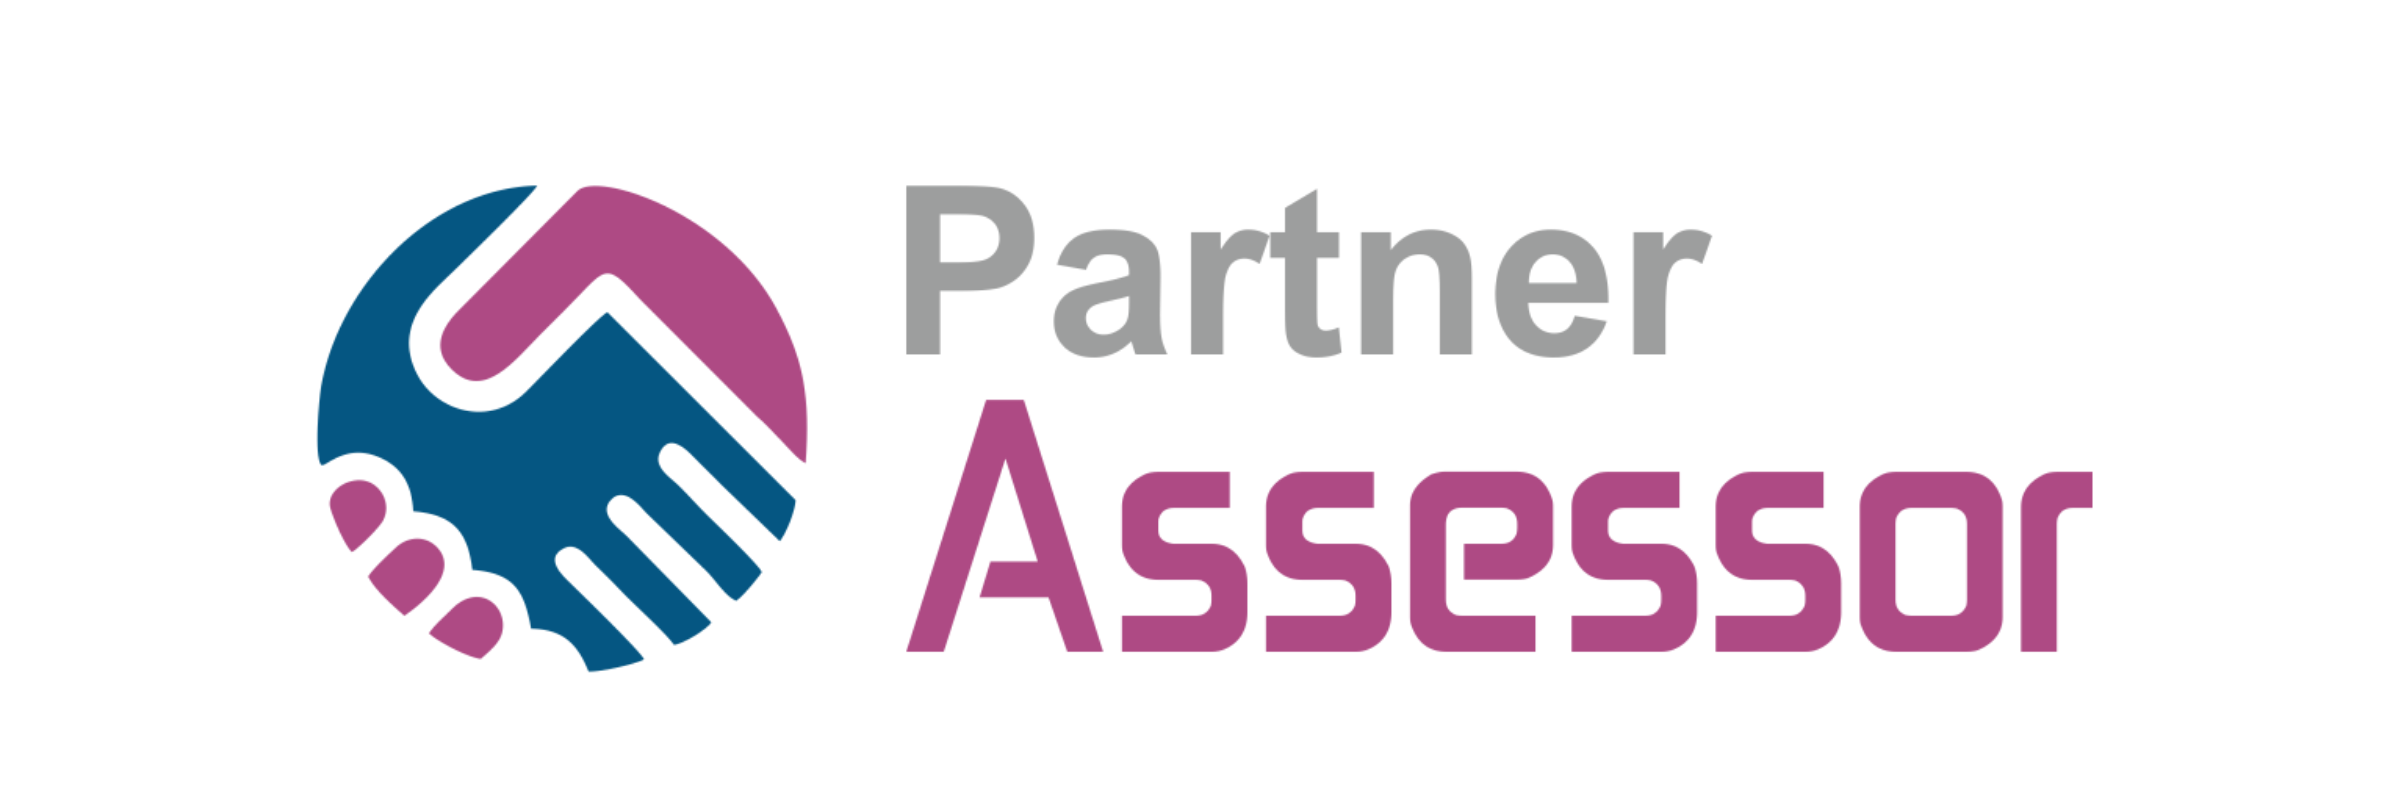 partner assessor | delta channel services